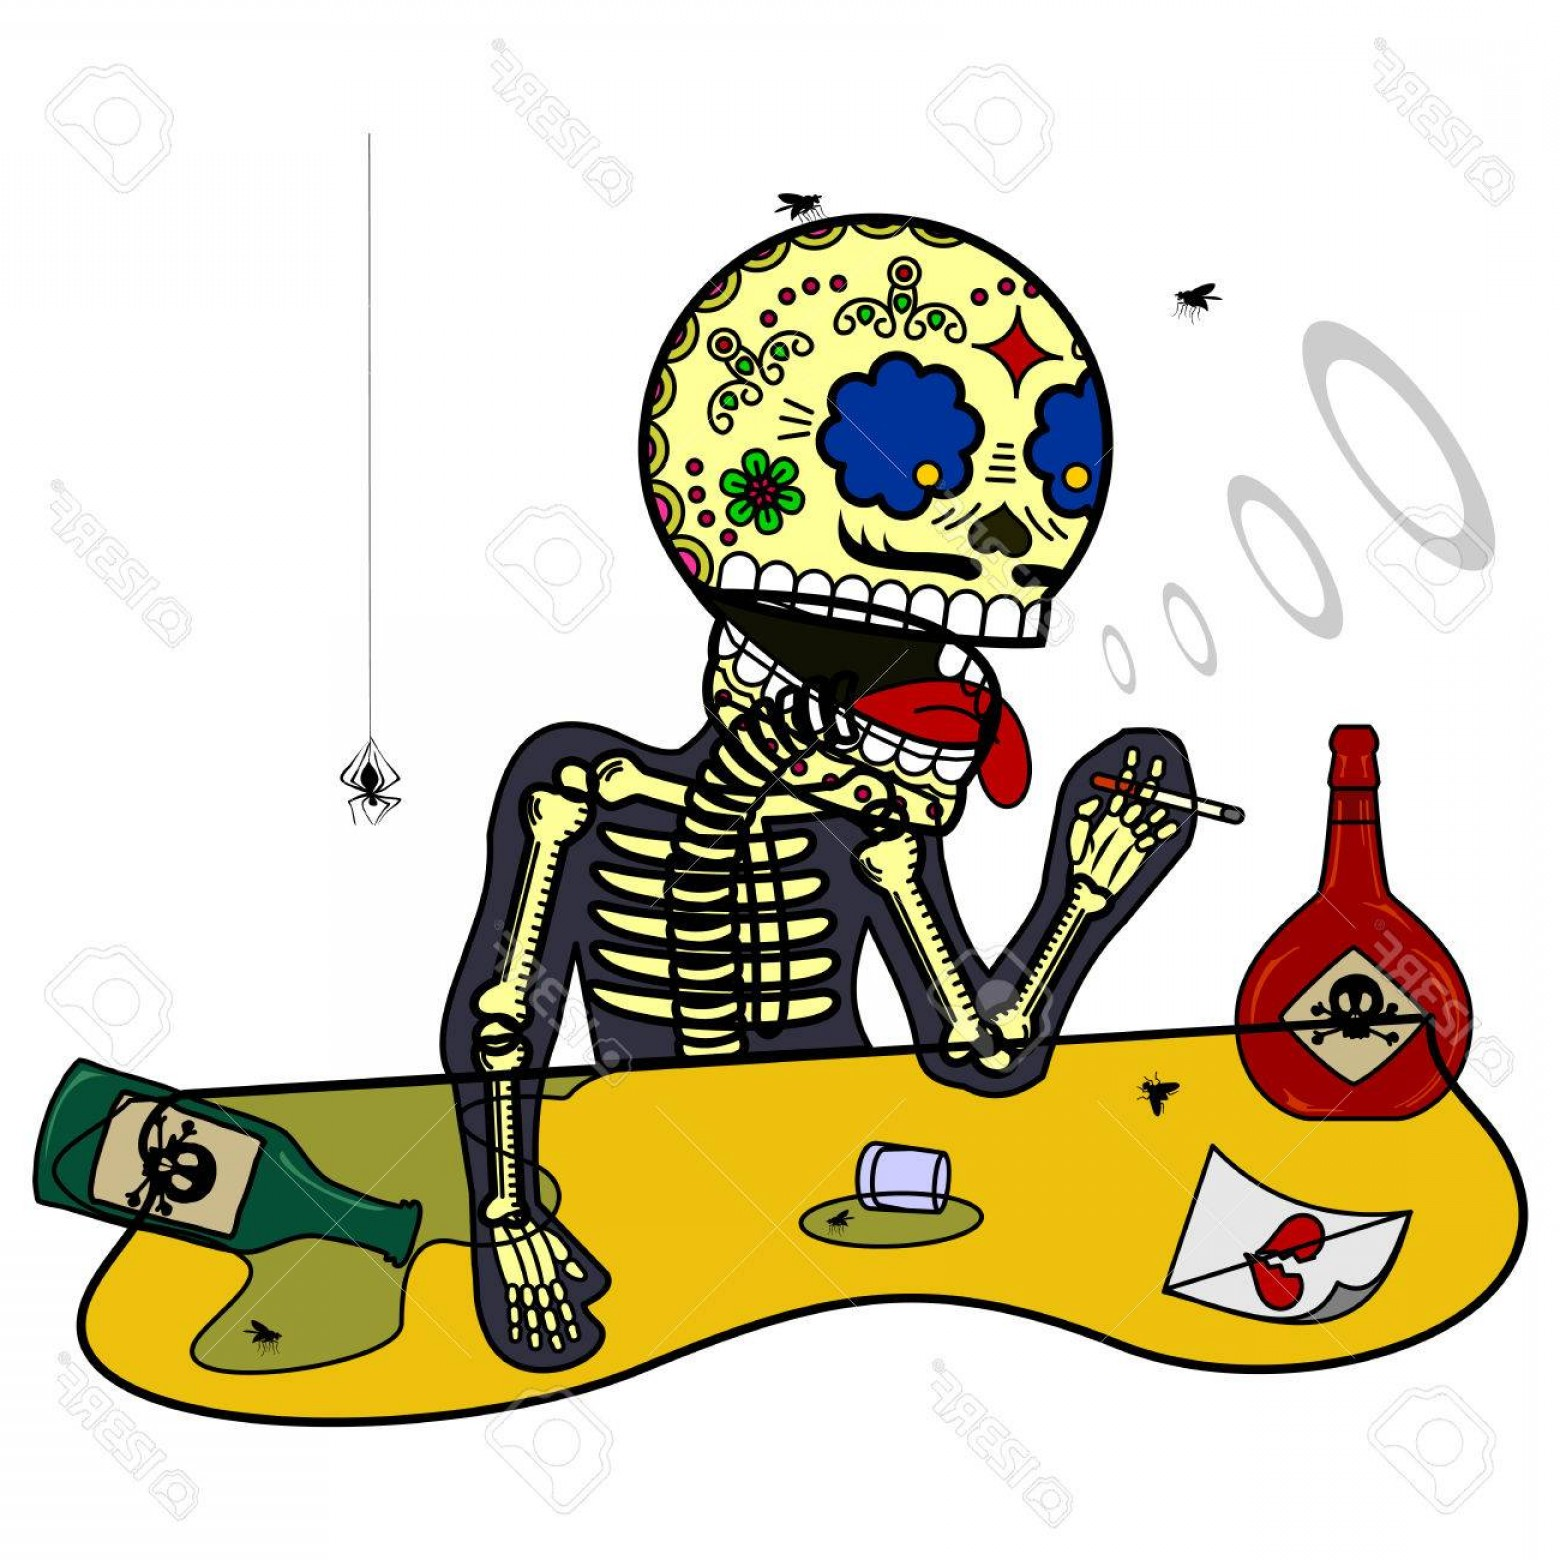 Skeletons In Love Vector: Photostock Vector Drinking Wine And Smoking Unhappy Love Broken Heart Vector Flat And Linear Illustration Of Skeleton